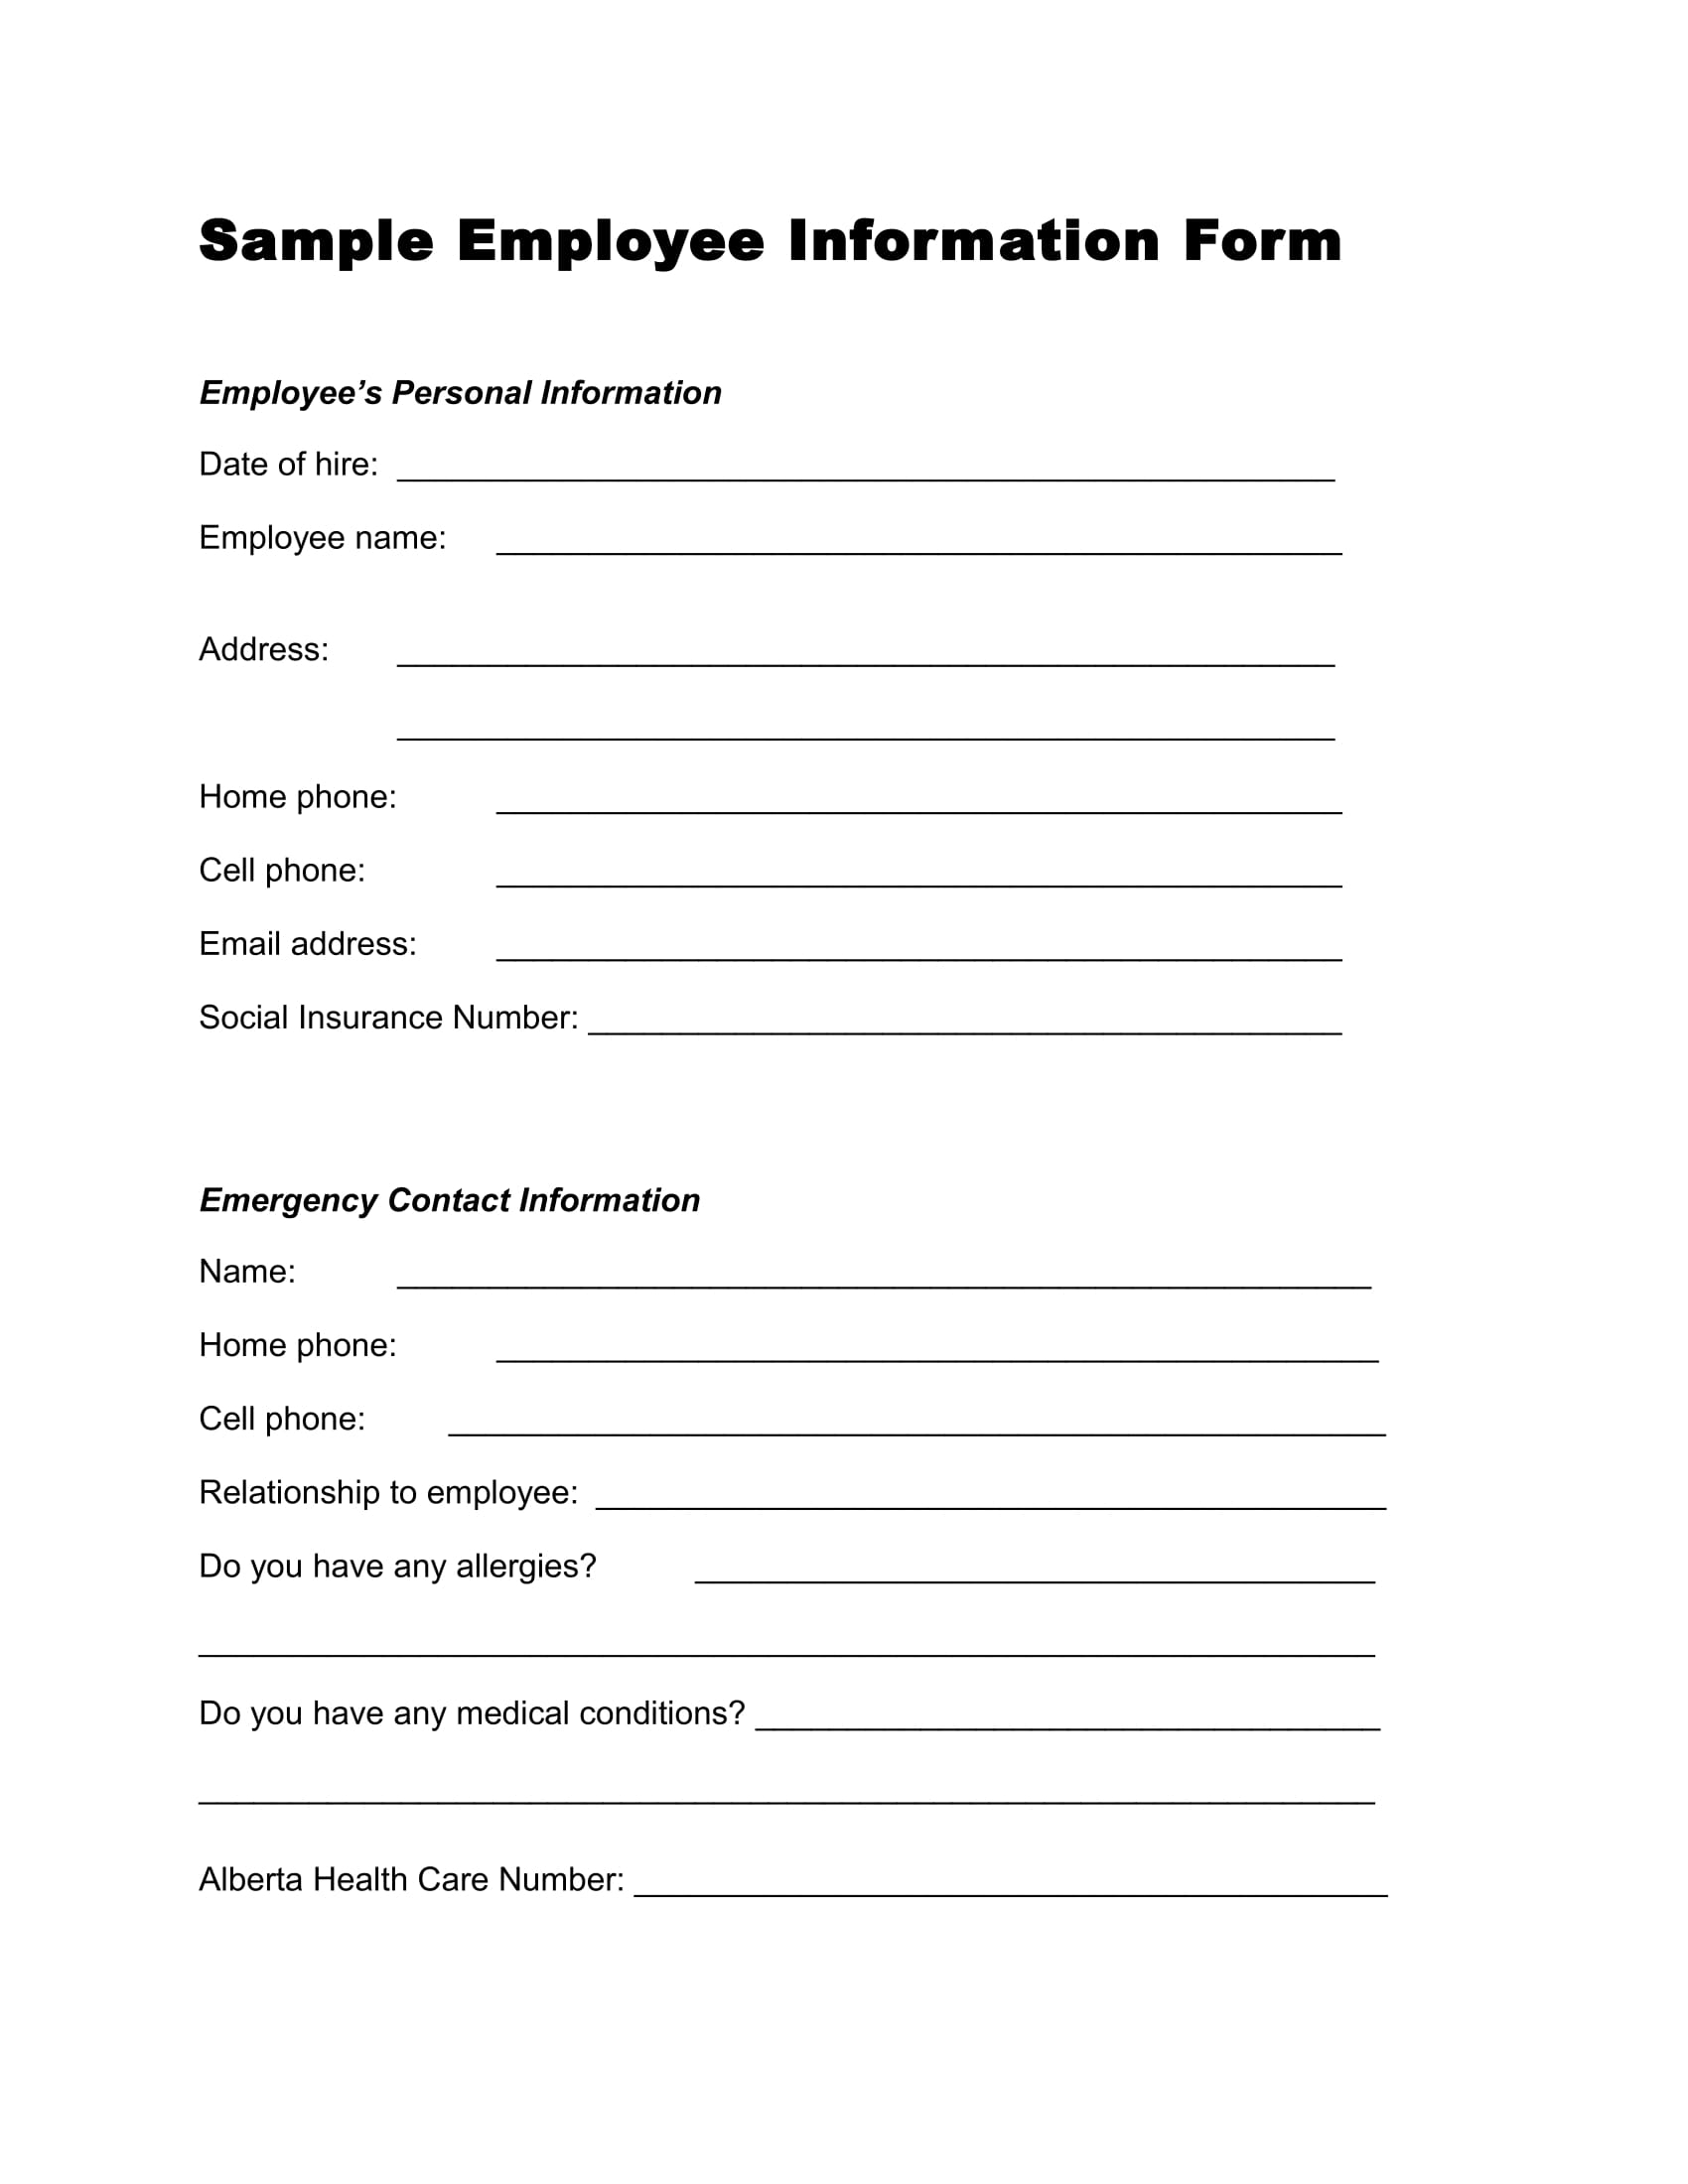 sample employee information form 1